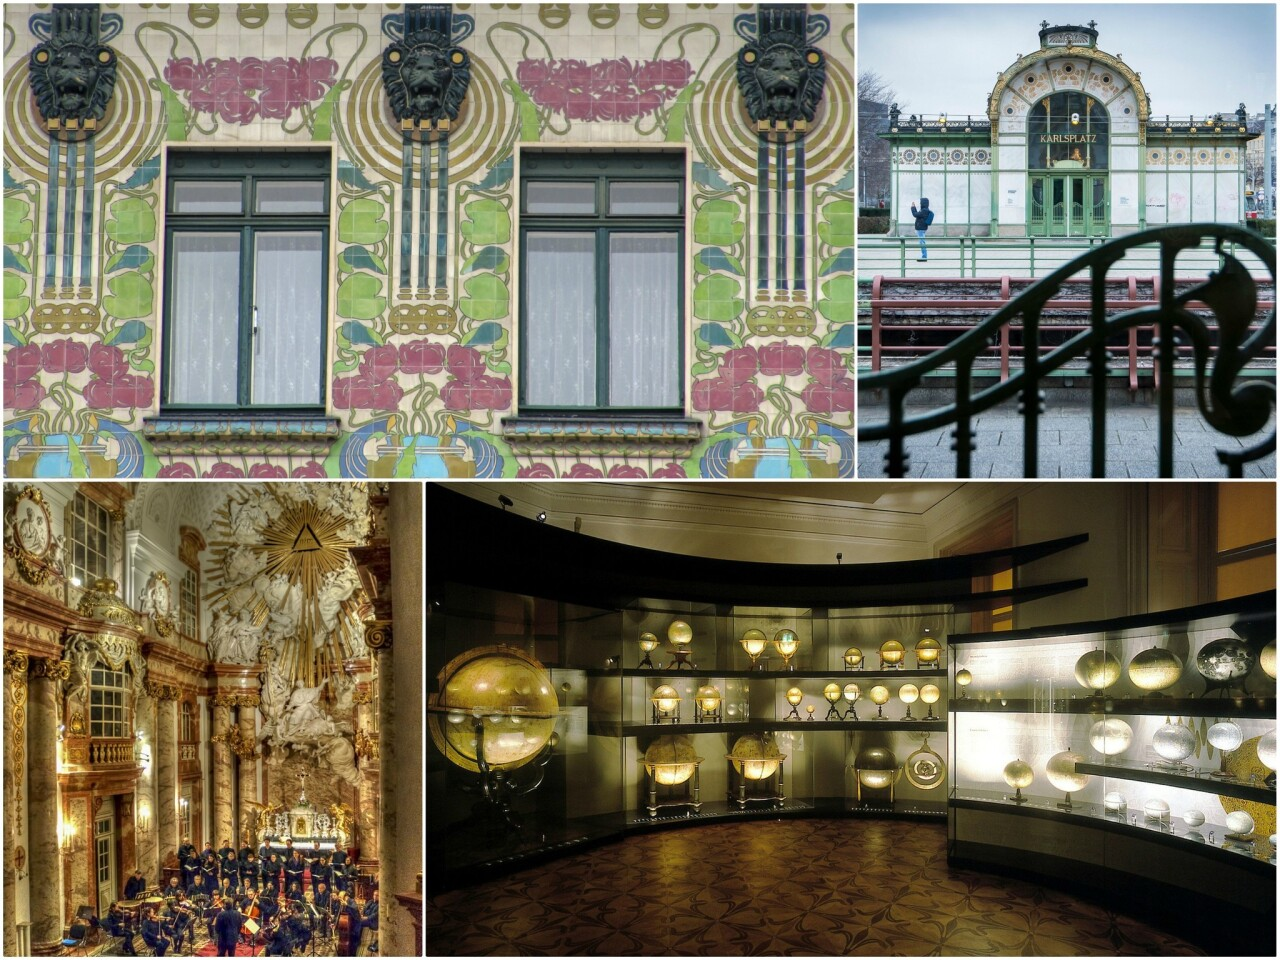 Clockwise from top left: The Majolica House; Karlsplatz Stadtbahn Station; The Globe Museum of the Austrian National Library; St. Charles Church.